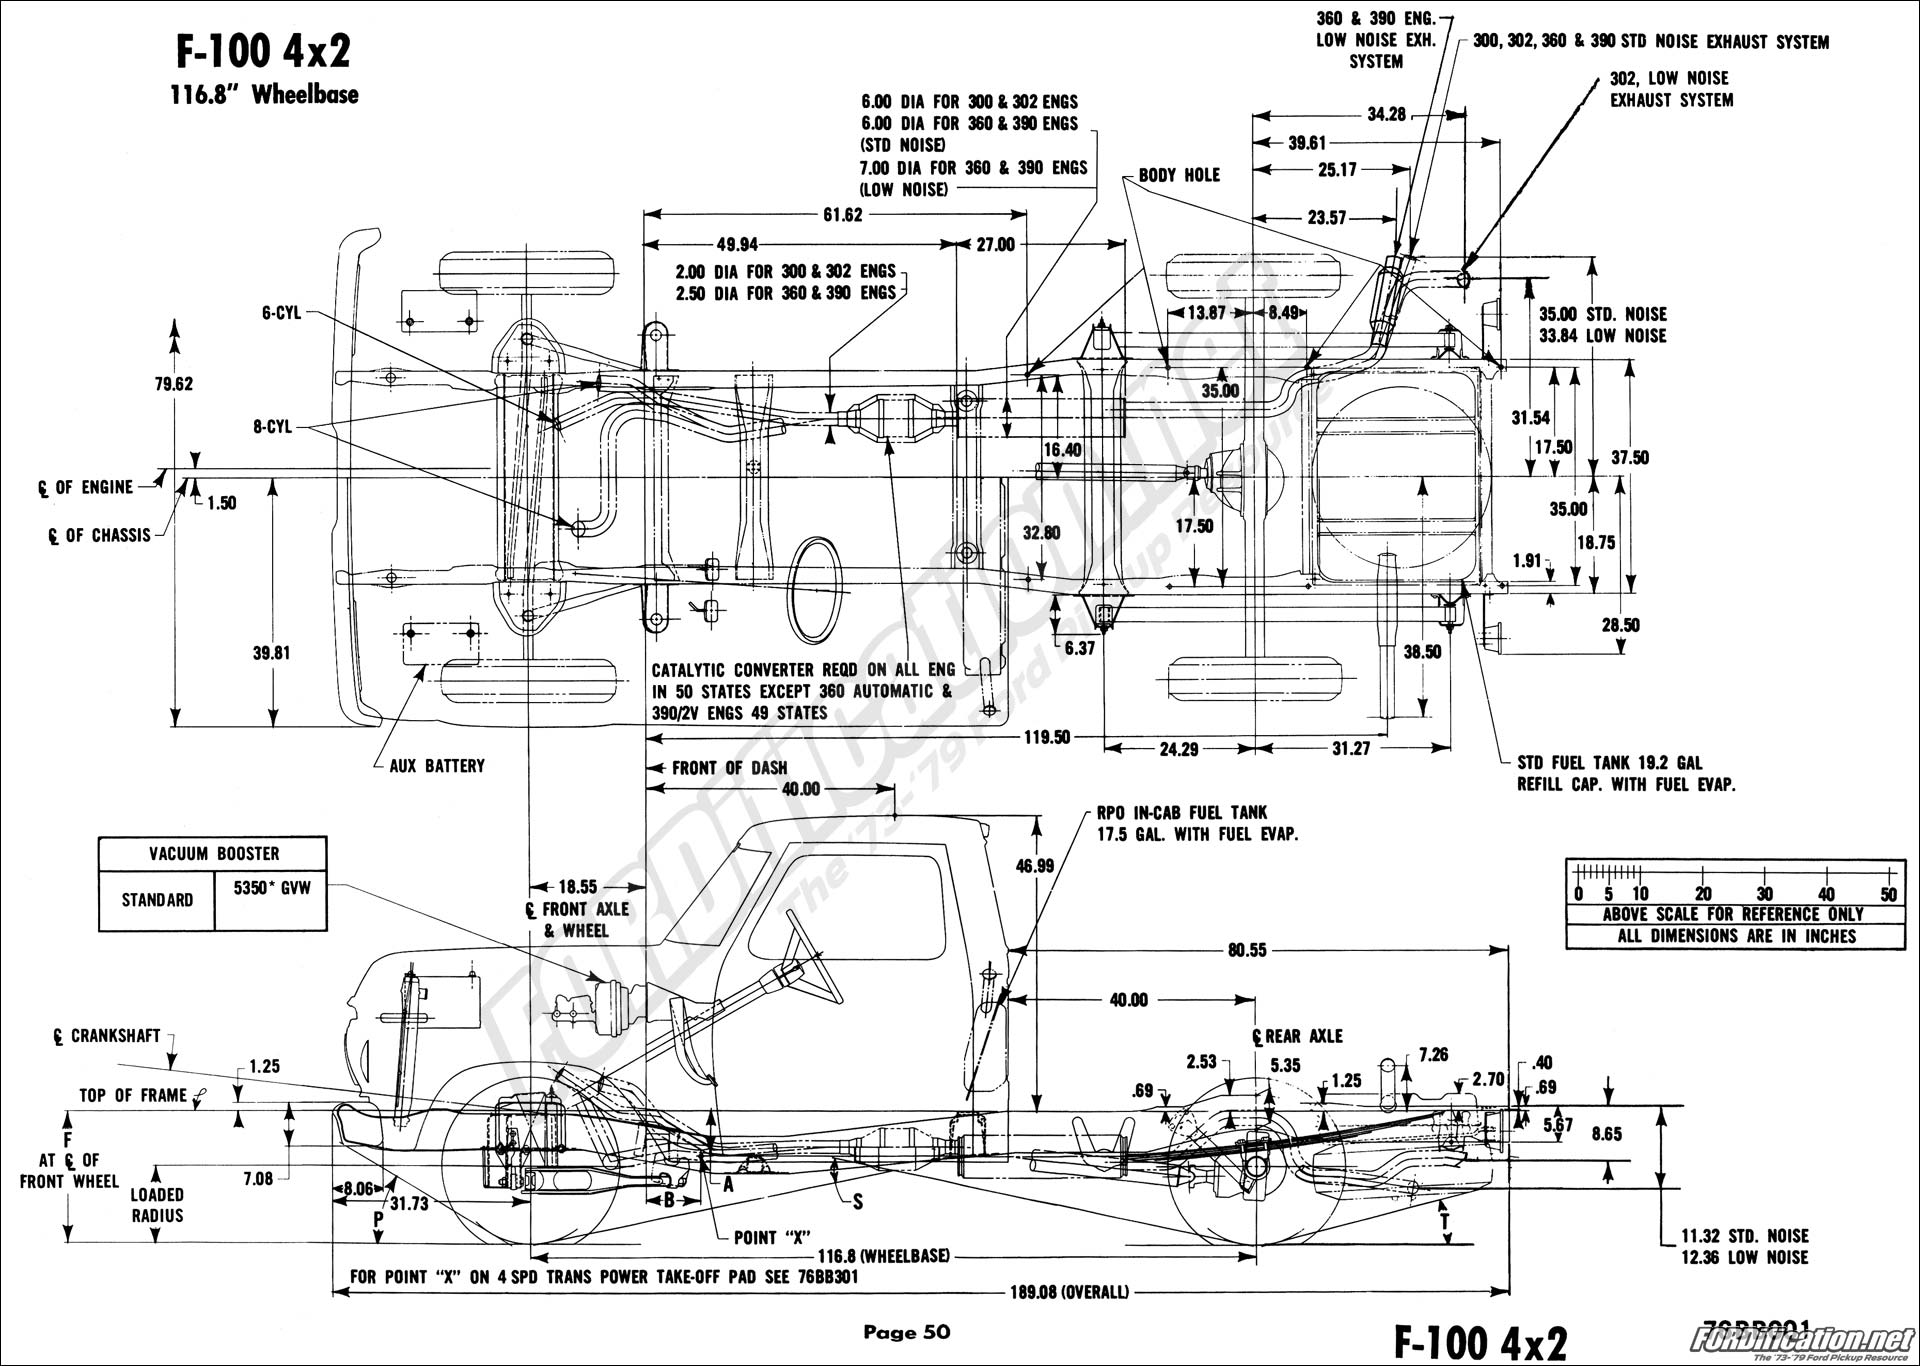 Ford F550 Frame Diagram Electrical Wiring Diagrams 2004 F350 Fuse Explaned Dimensions Viewframes Org Cars For Yuncke Duty